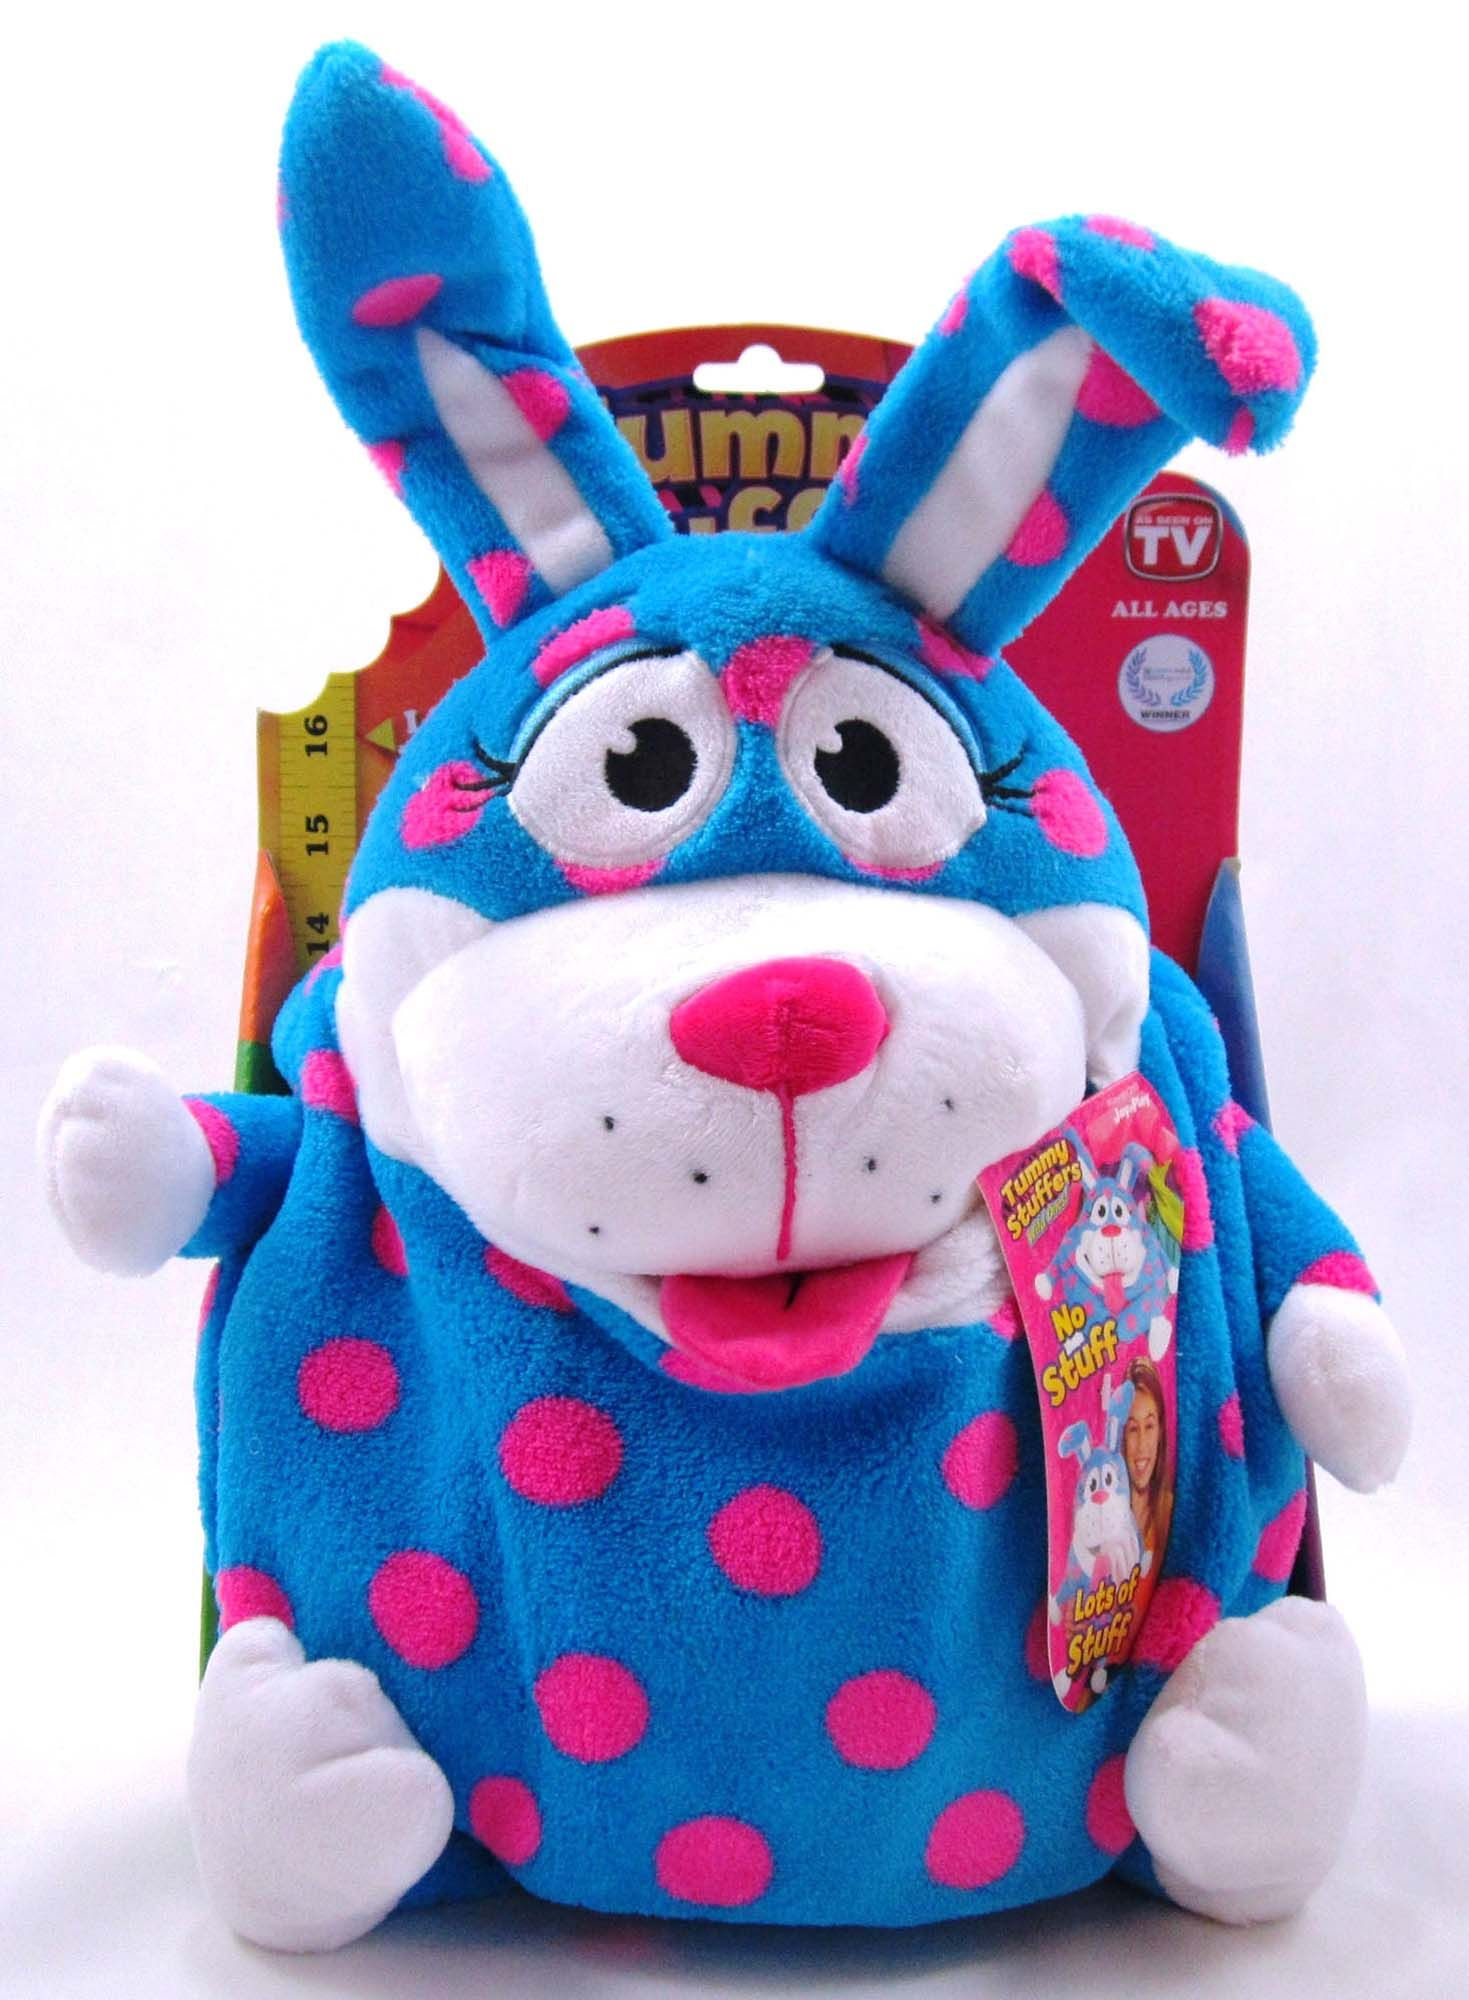 As Seen On Tv This Plush Toy Doubles As A Cuddly Soft Blue And Pink